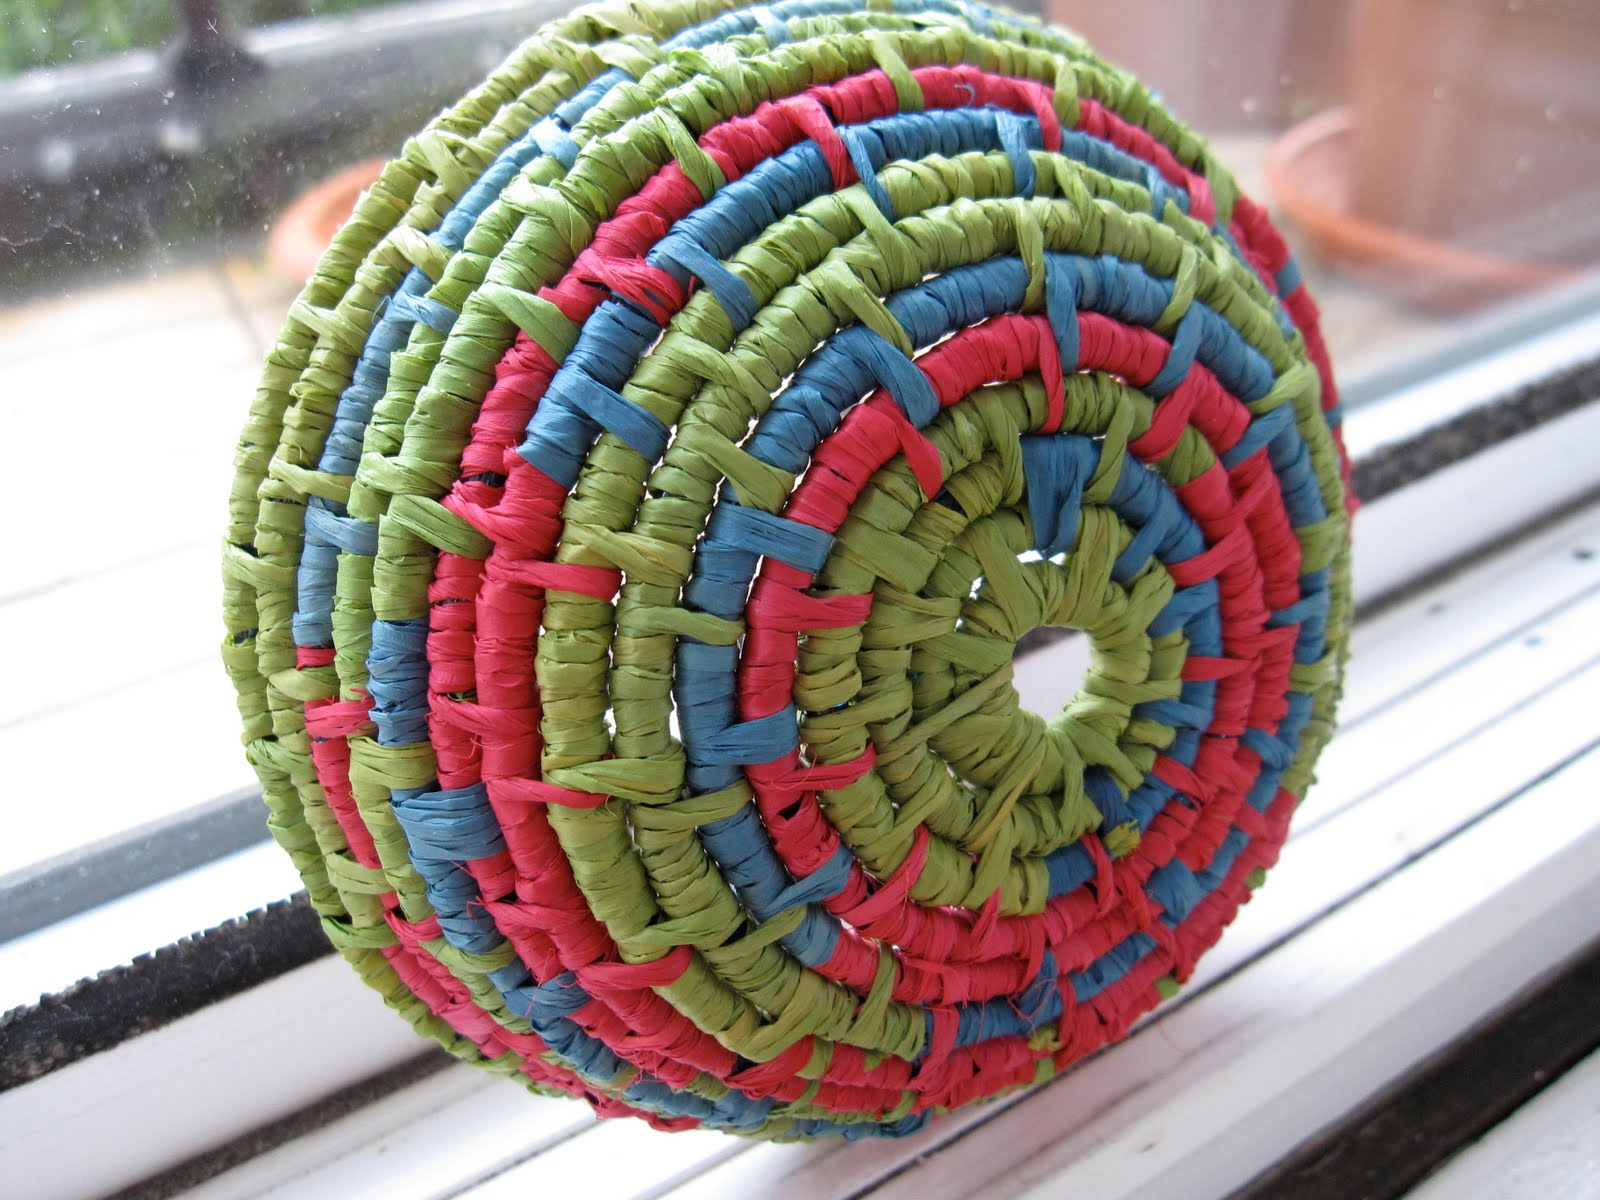 Coil Basket Weaving Patterns : Goldfinch and eagle coiled baskets